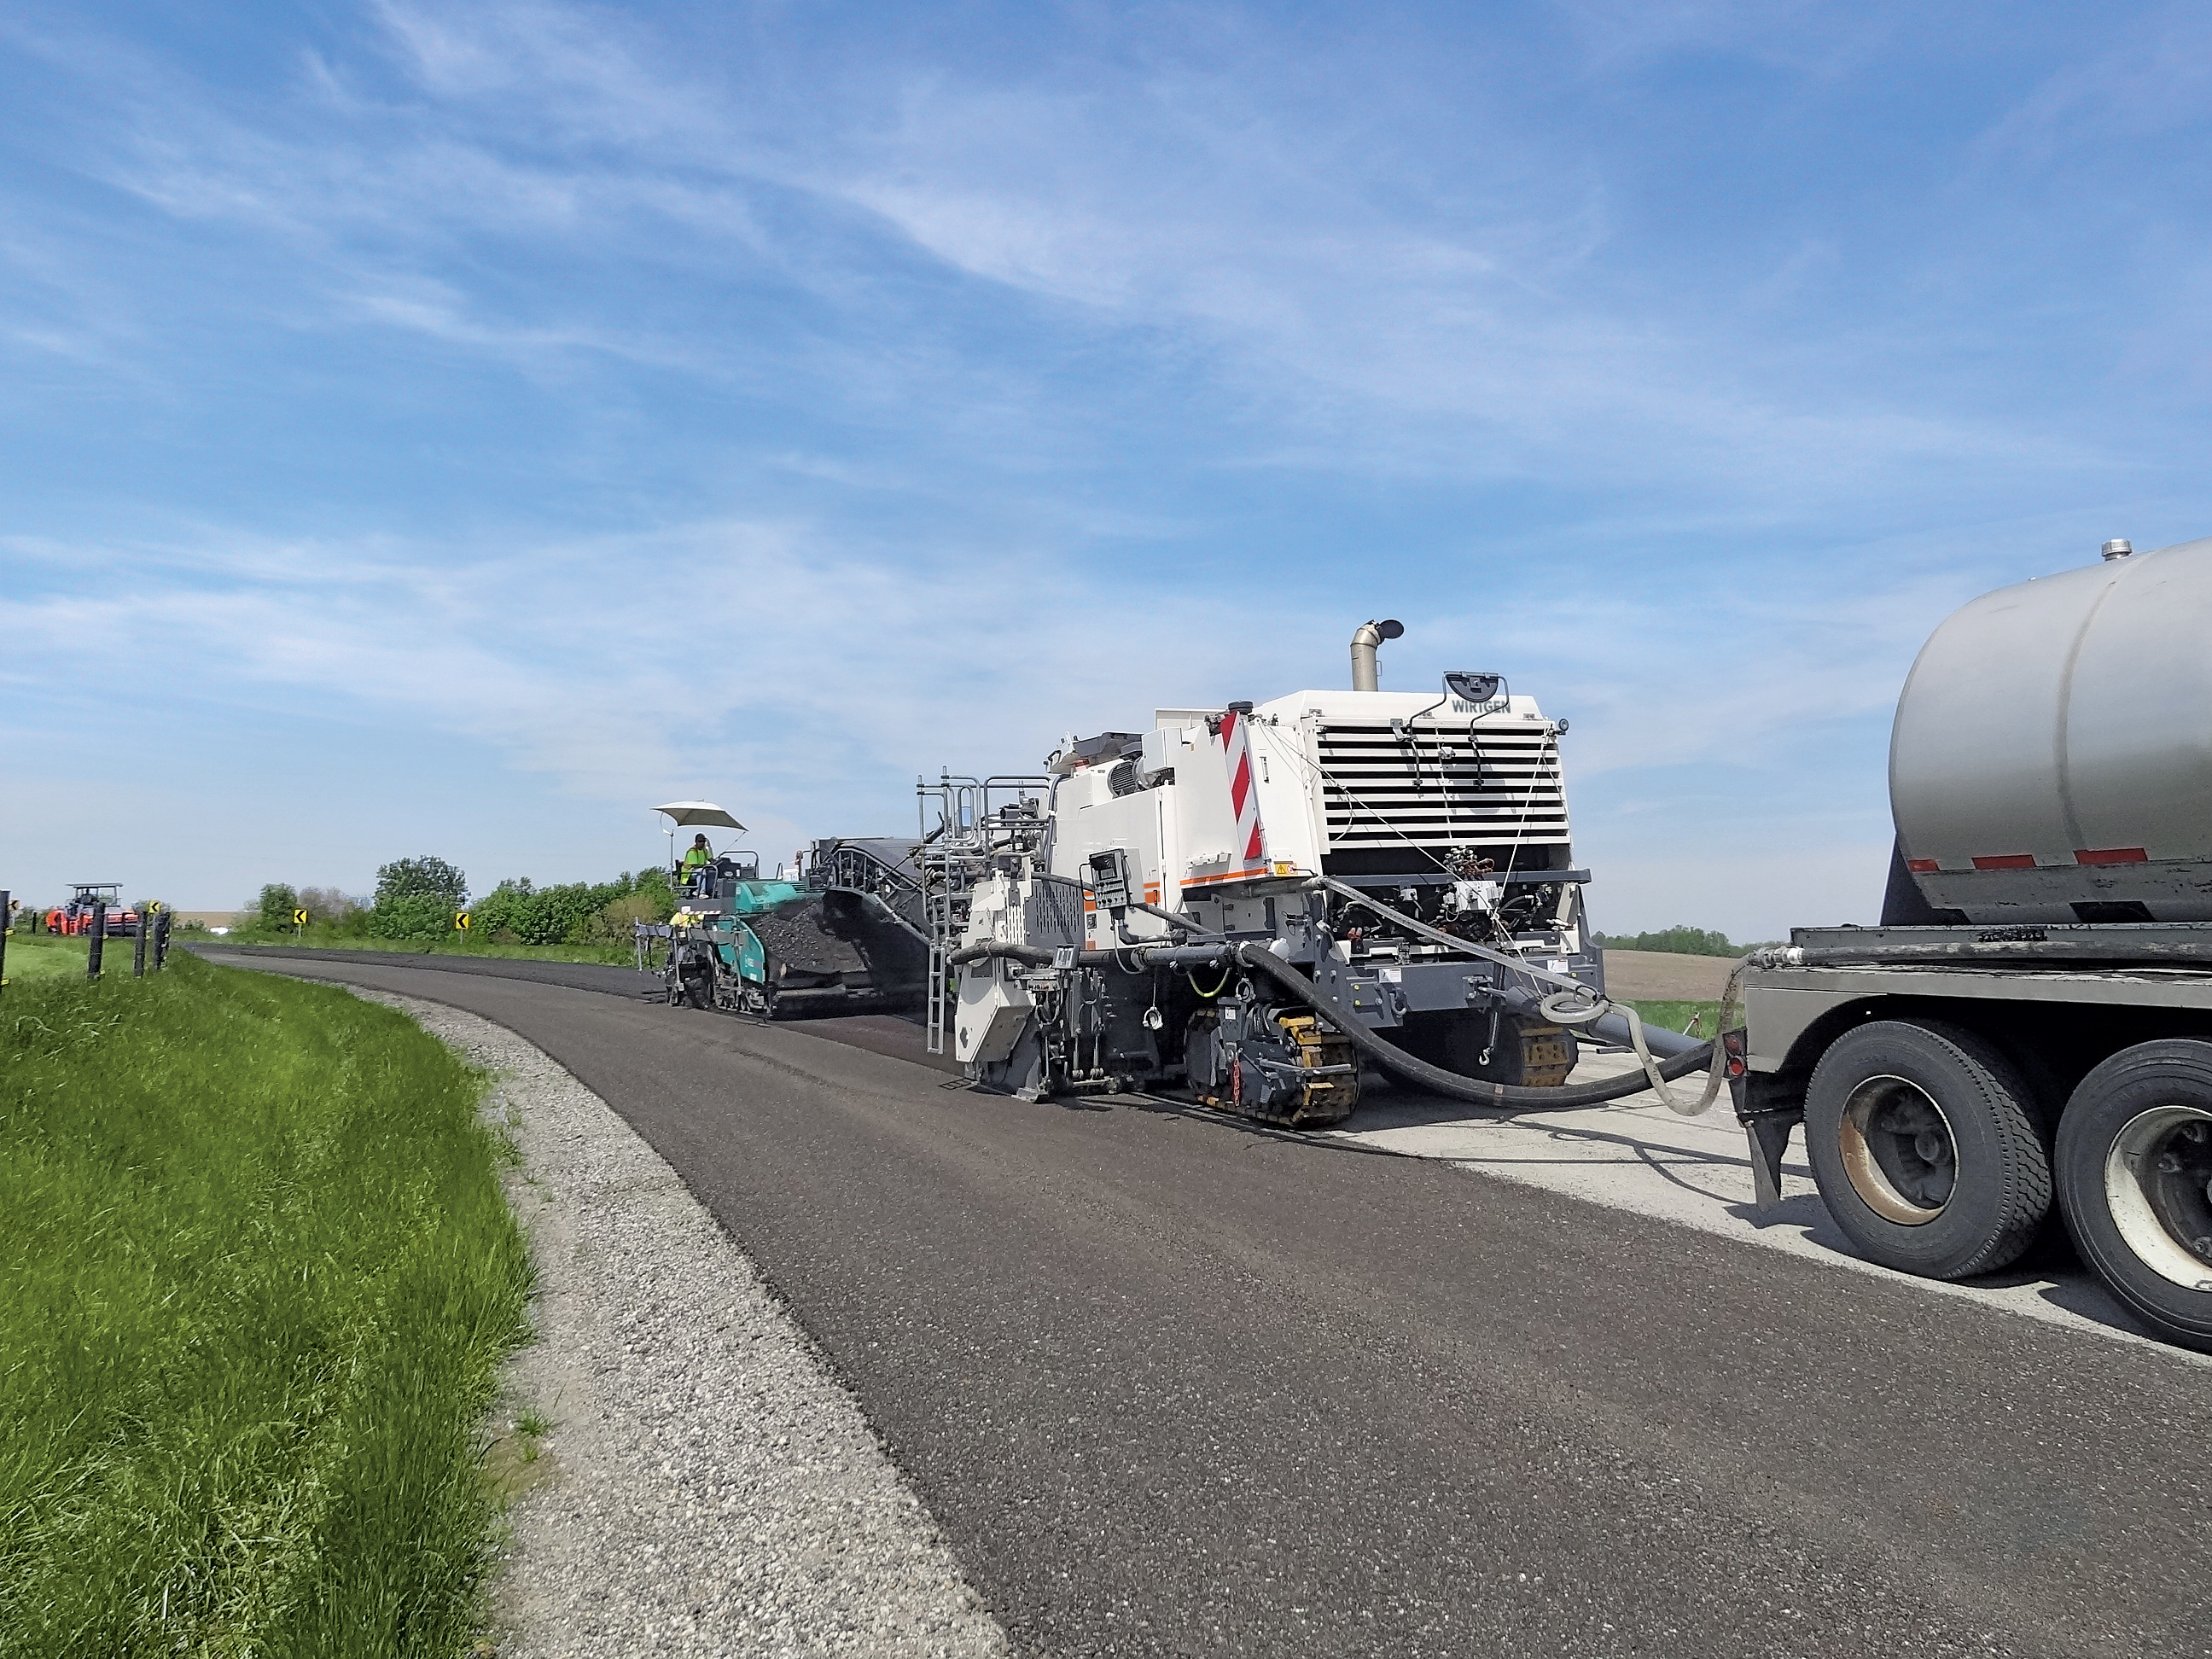 The Wirtgen 3800 CR seamlessly processes 12 ft., 6 in. (3,8 m) wide lanes in one pass. Adding binding agents, the powerful cold recycler quickly and economically transforms damaged asphalt courses in-place into high-grade, precompacted base courses, all with minimum disruption to traffic.